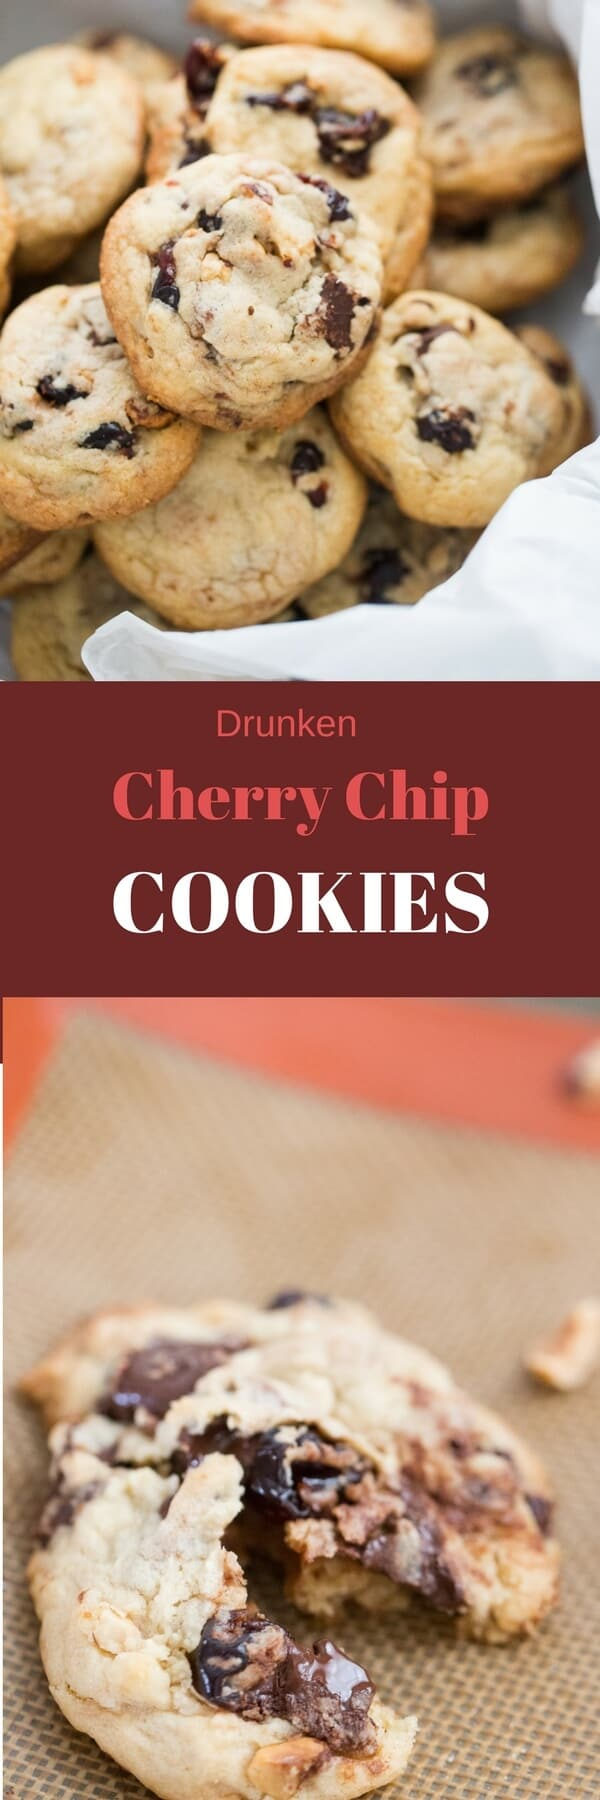 These cherry chip cookies are for the sophisticated cookie lover! Each bit features boozy cherries, chocolate chunks and crunchy hazelnuts!